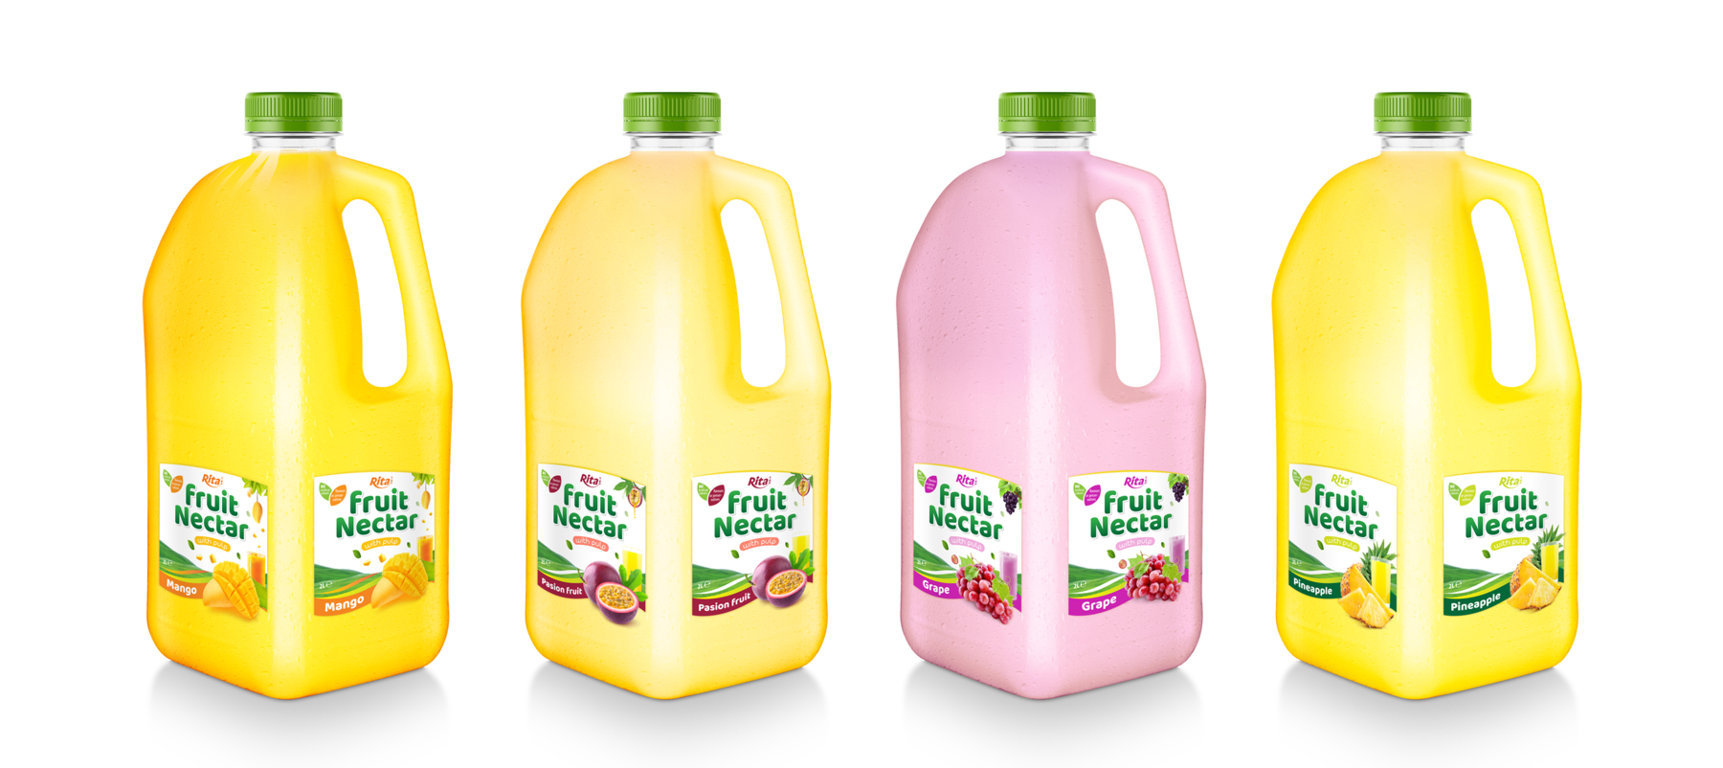 Fruit Nectar 2L with passion fruit flavor